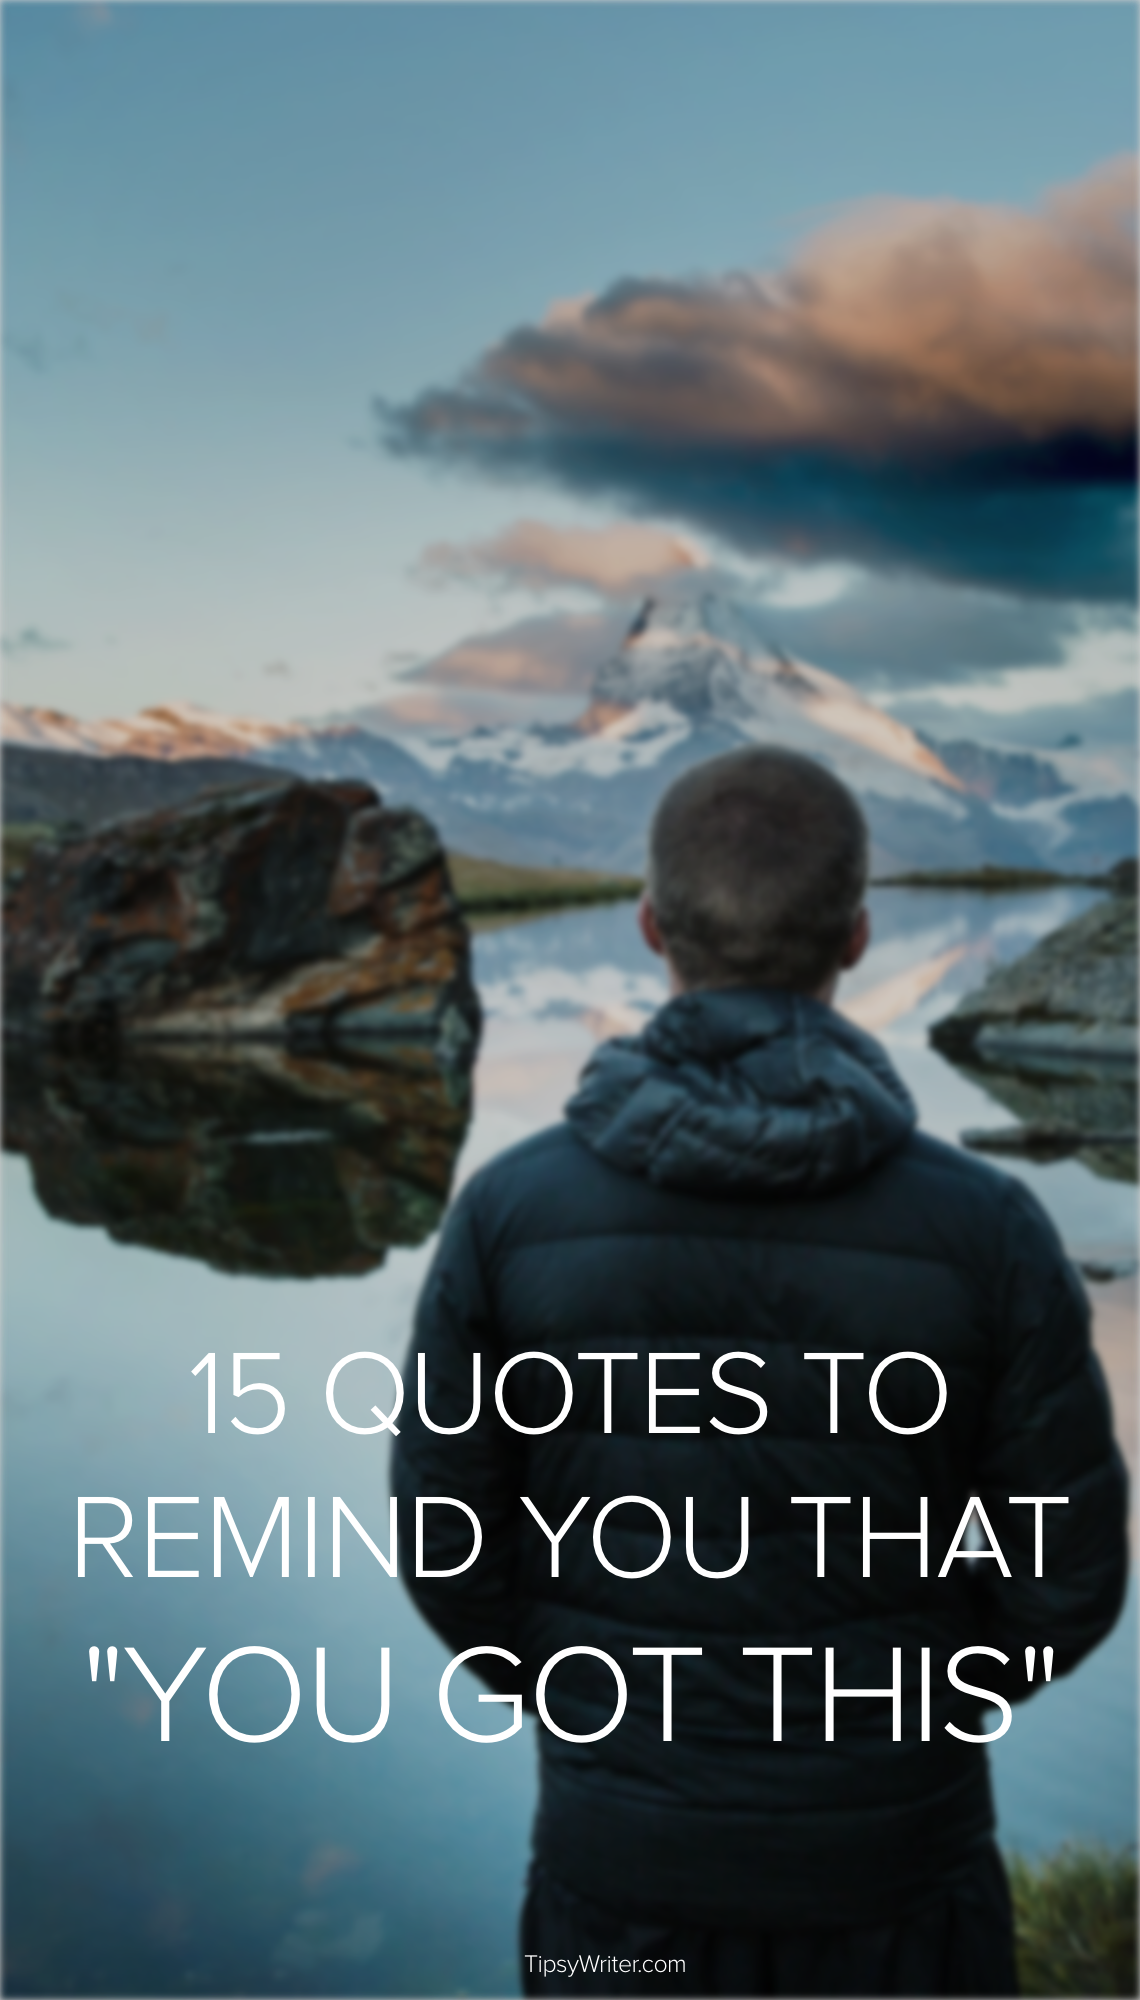 15 Quotes To Remind You That YOU